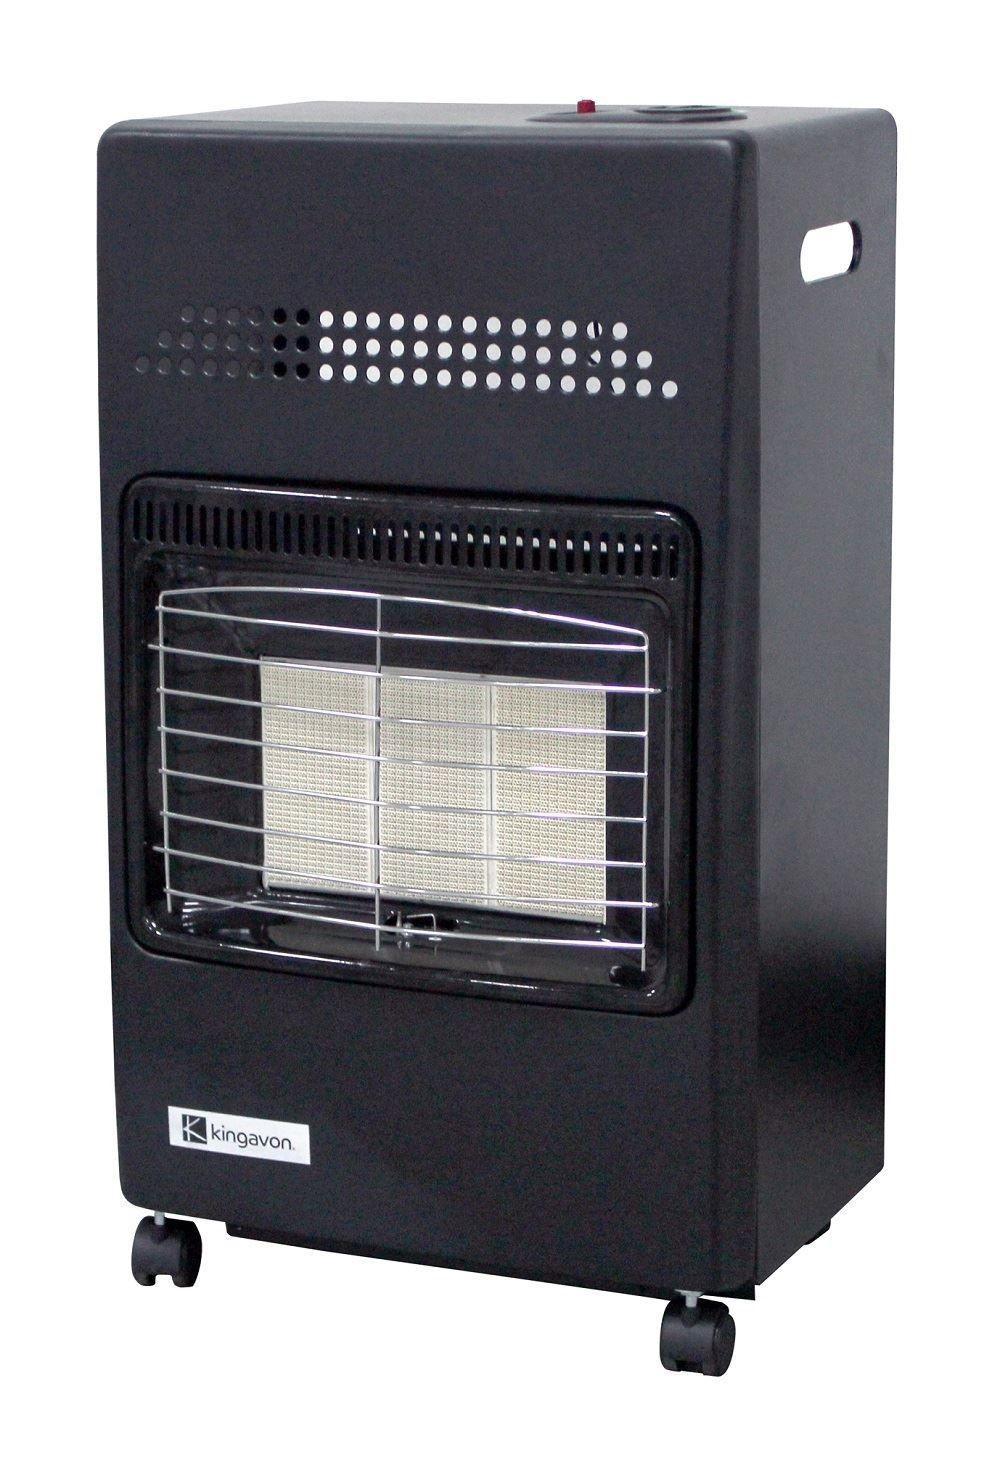 Kingavon Portable Gas Cabinet Heater 4 2kw Mcparlands